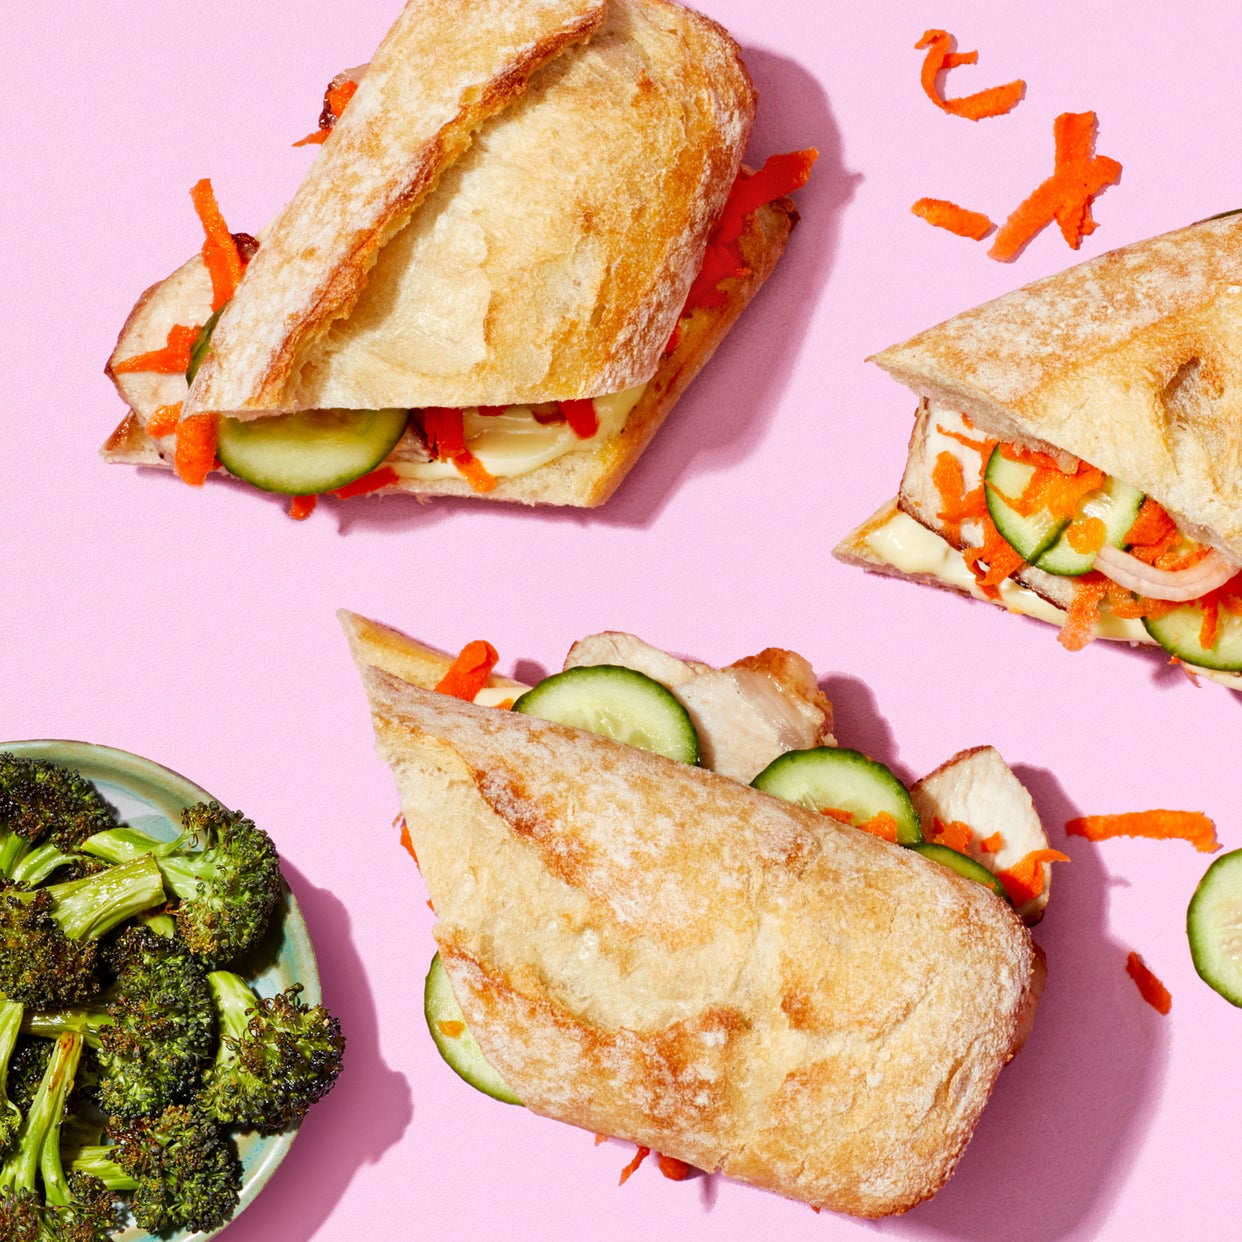 Chrissy Teigen's Pork Banh Mi with Quick Pickles & Roasted Broccoli